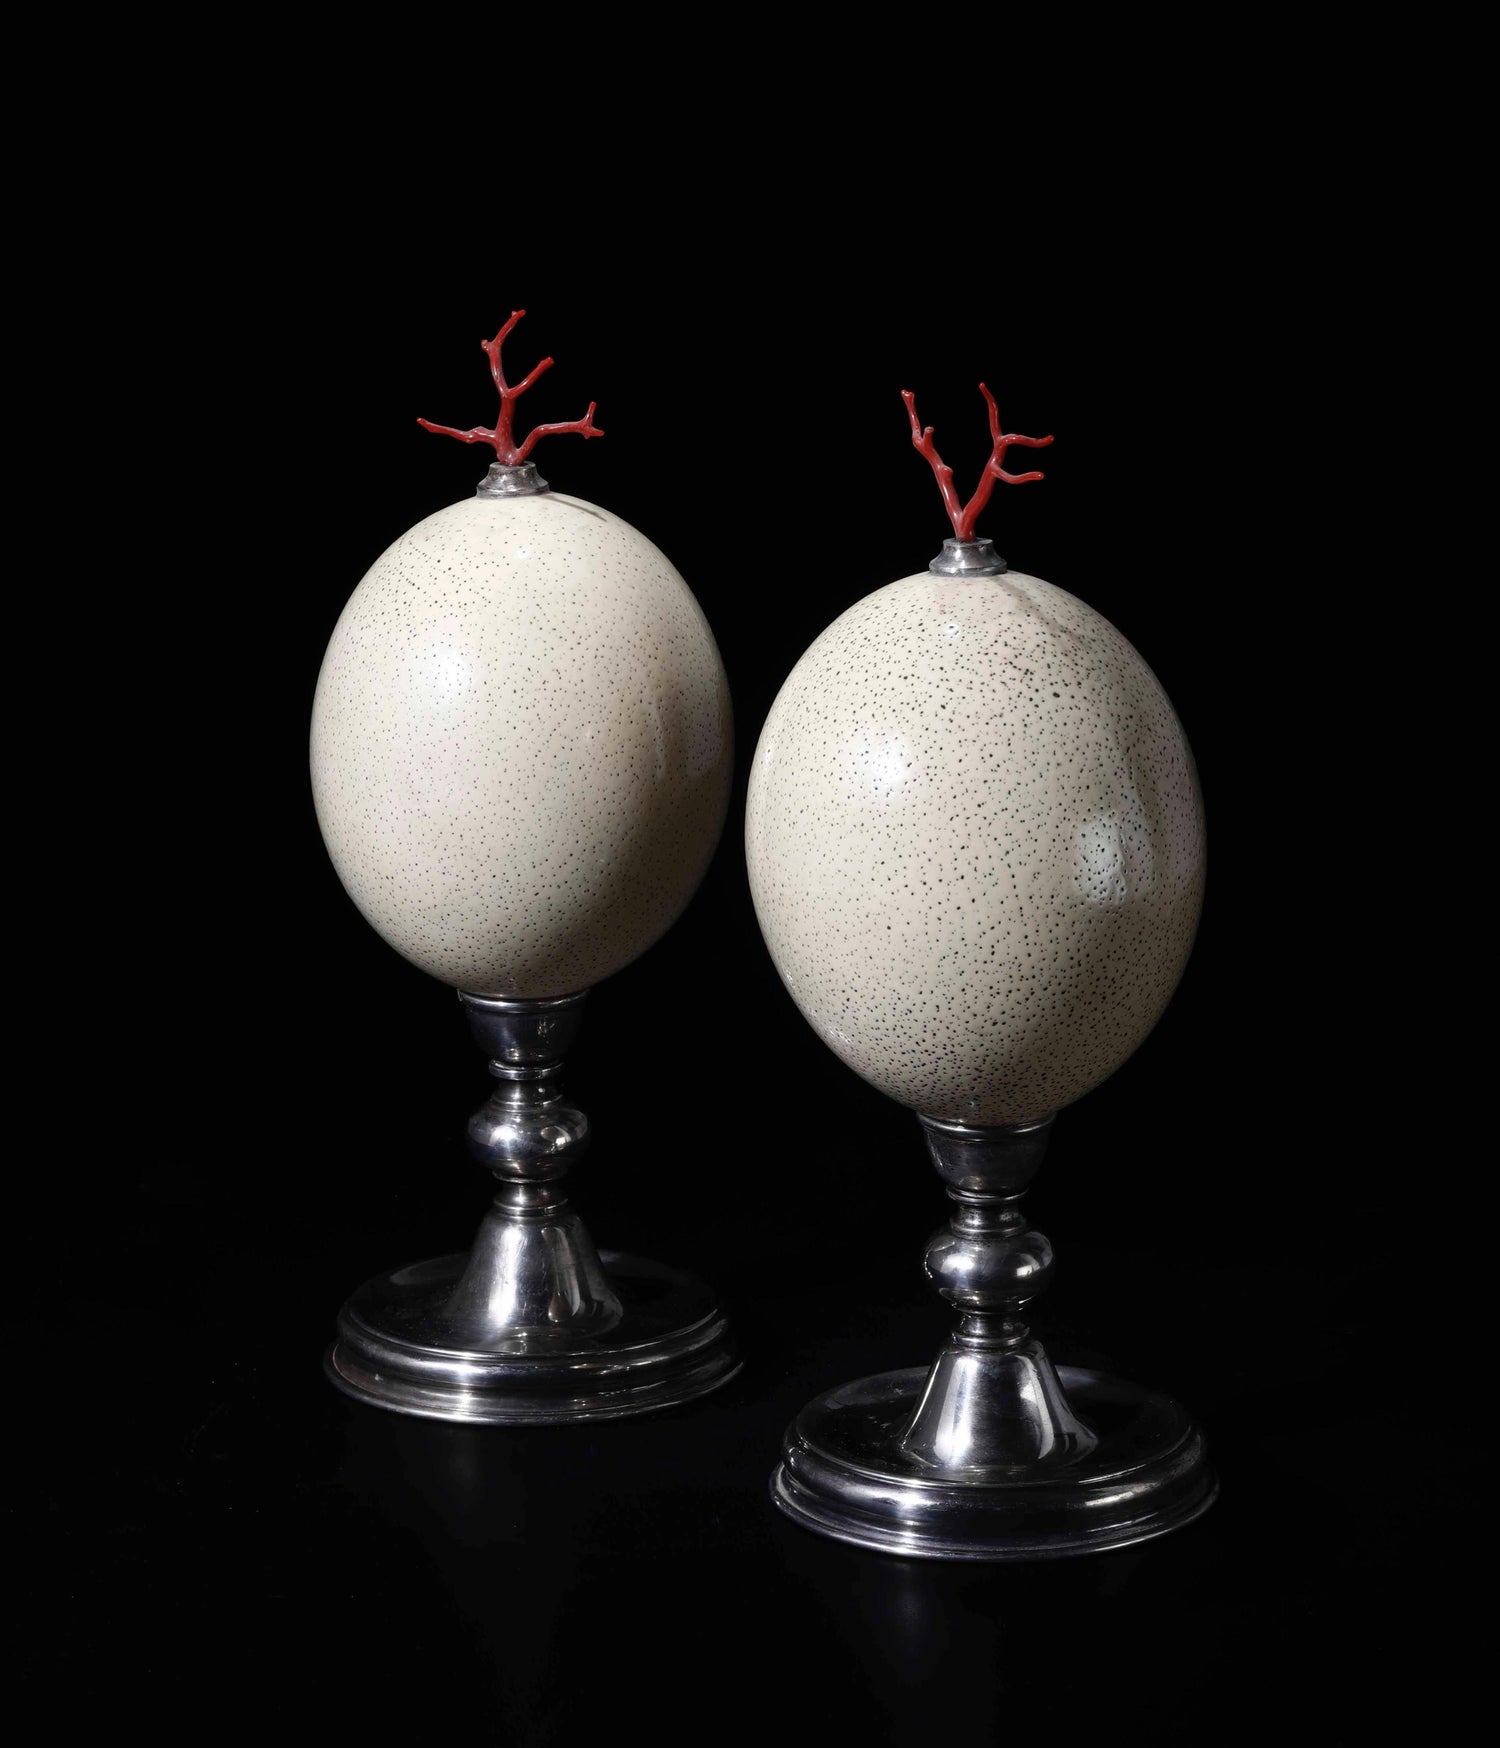 Image of Pair of exotic ostrich eggs with red coral sprigs mounted on silver display stands